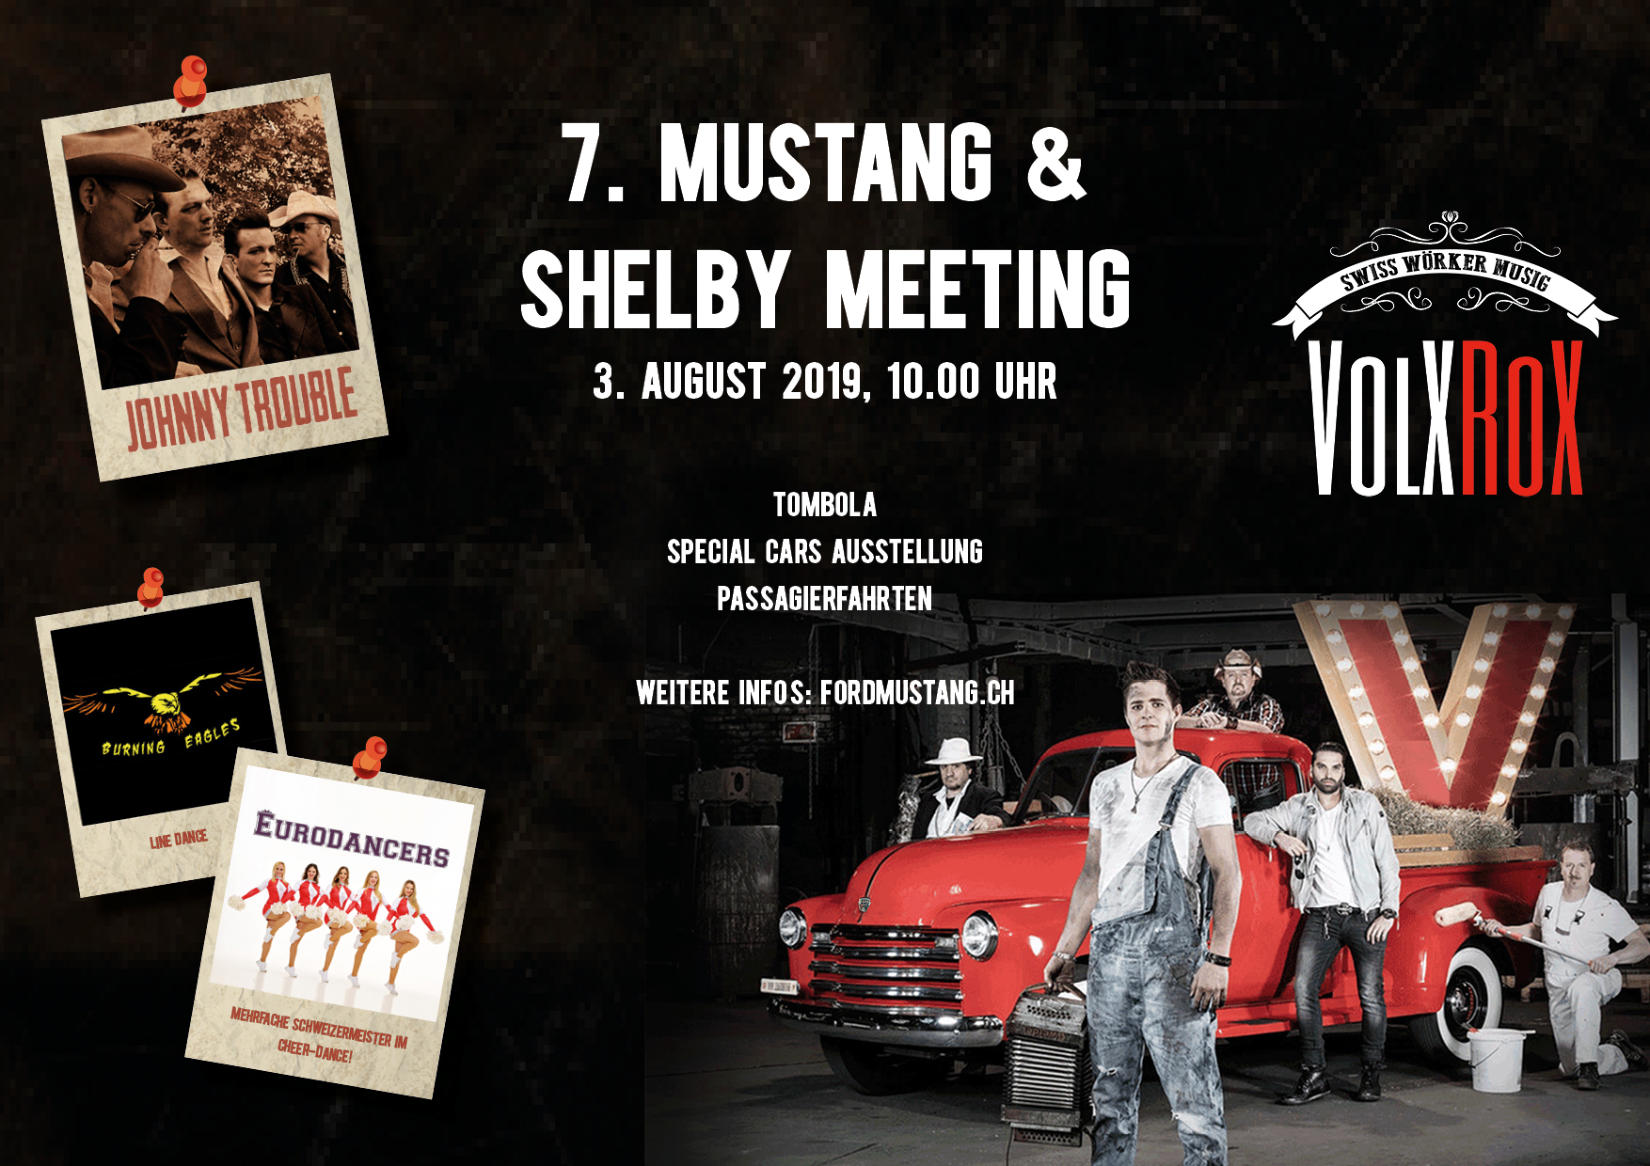 7. Mustang & Shelby Meeting 2019